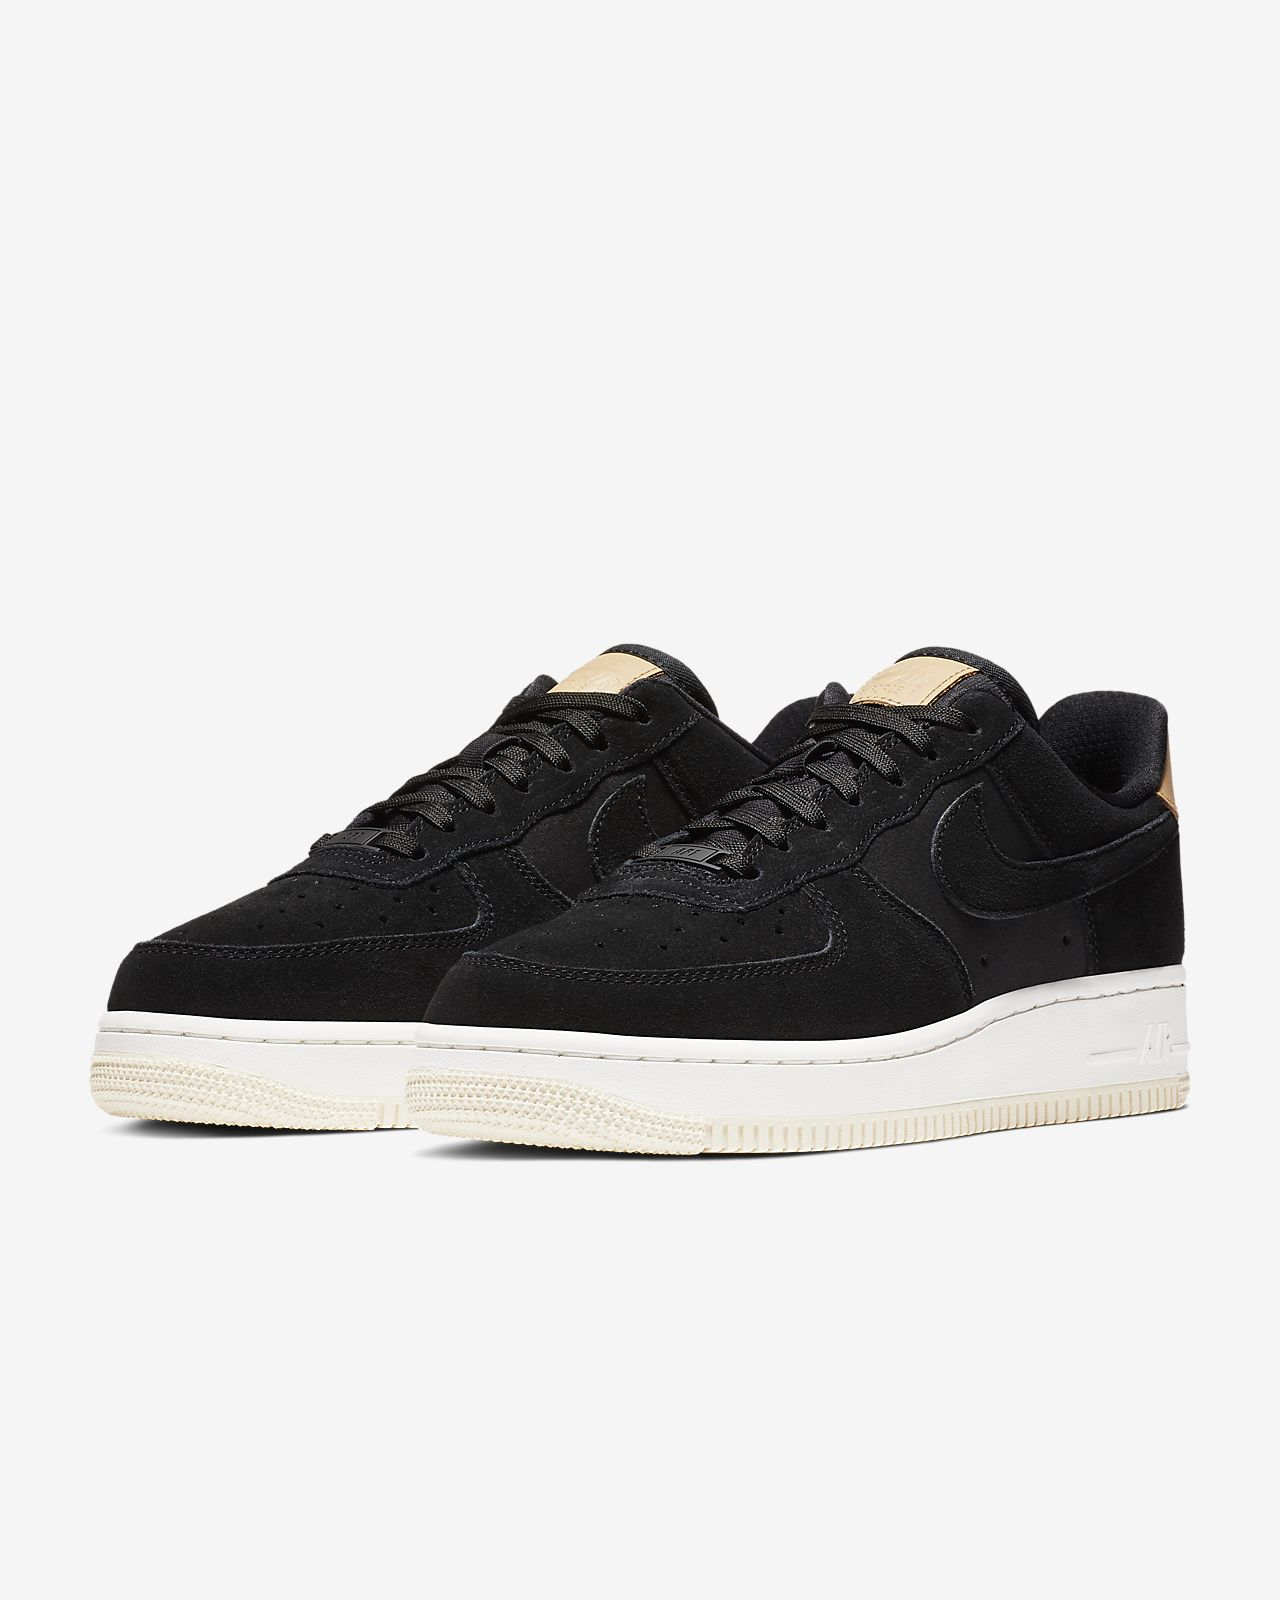 online retailer 823ed 76c3b ... Sko Nike Air Force 1  07 Low Premium för kvinnor